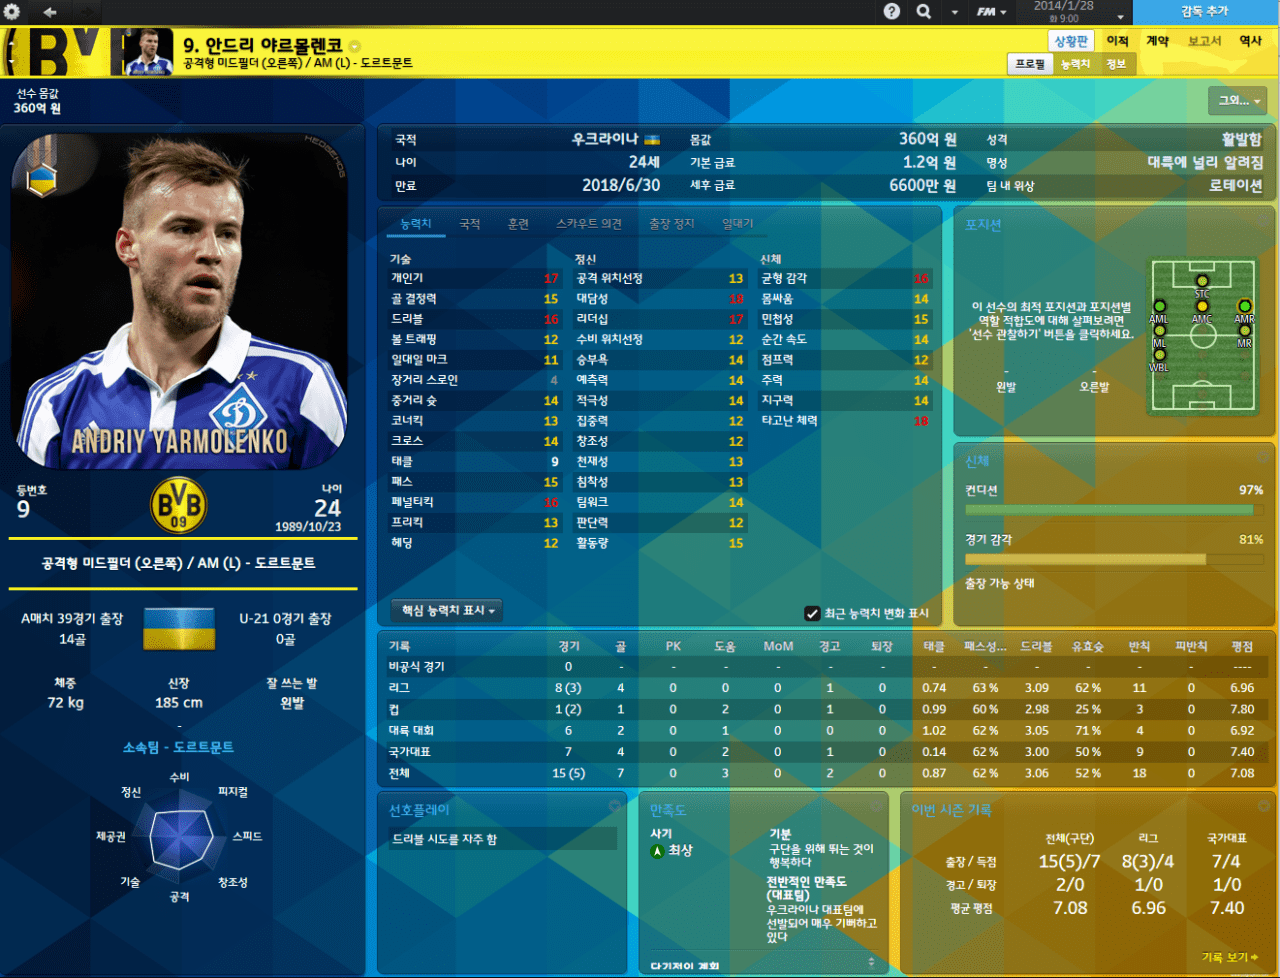 Yarmolenko.PNG [14.3.1] Football Manager 2014 17-18 EU Transfer FMDONG ROSTER BETA v0.61